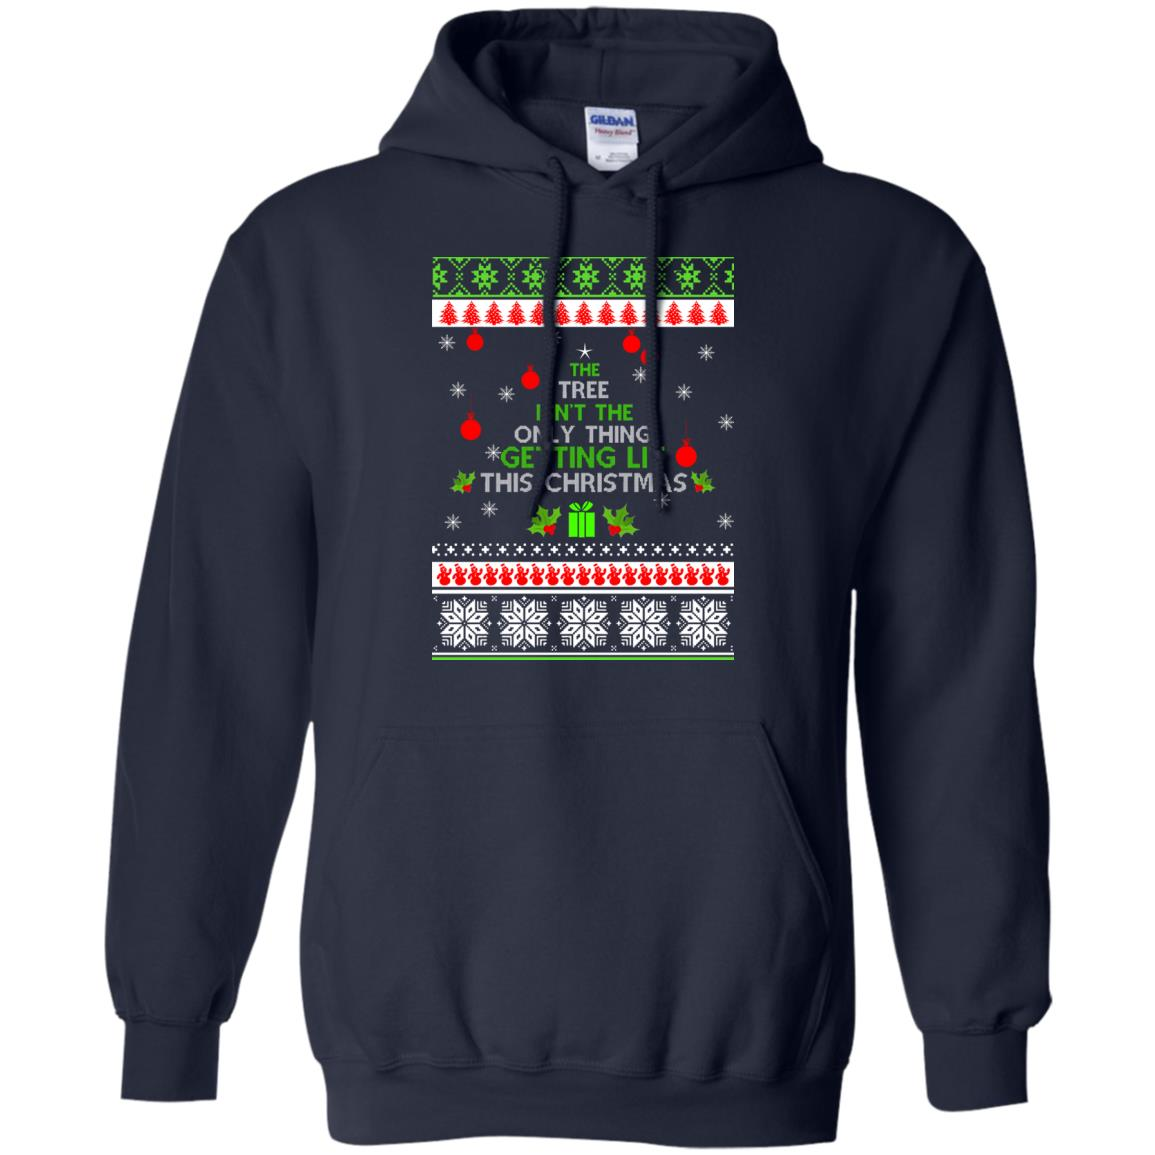 image 5568 - The Tree Isn't The Only Thing Getting Lit This Christmas Sweater, Long Sleeve